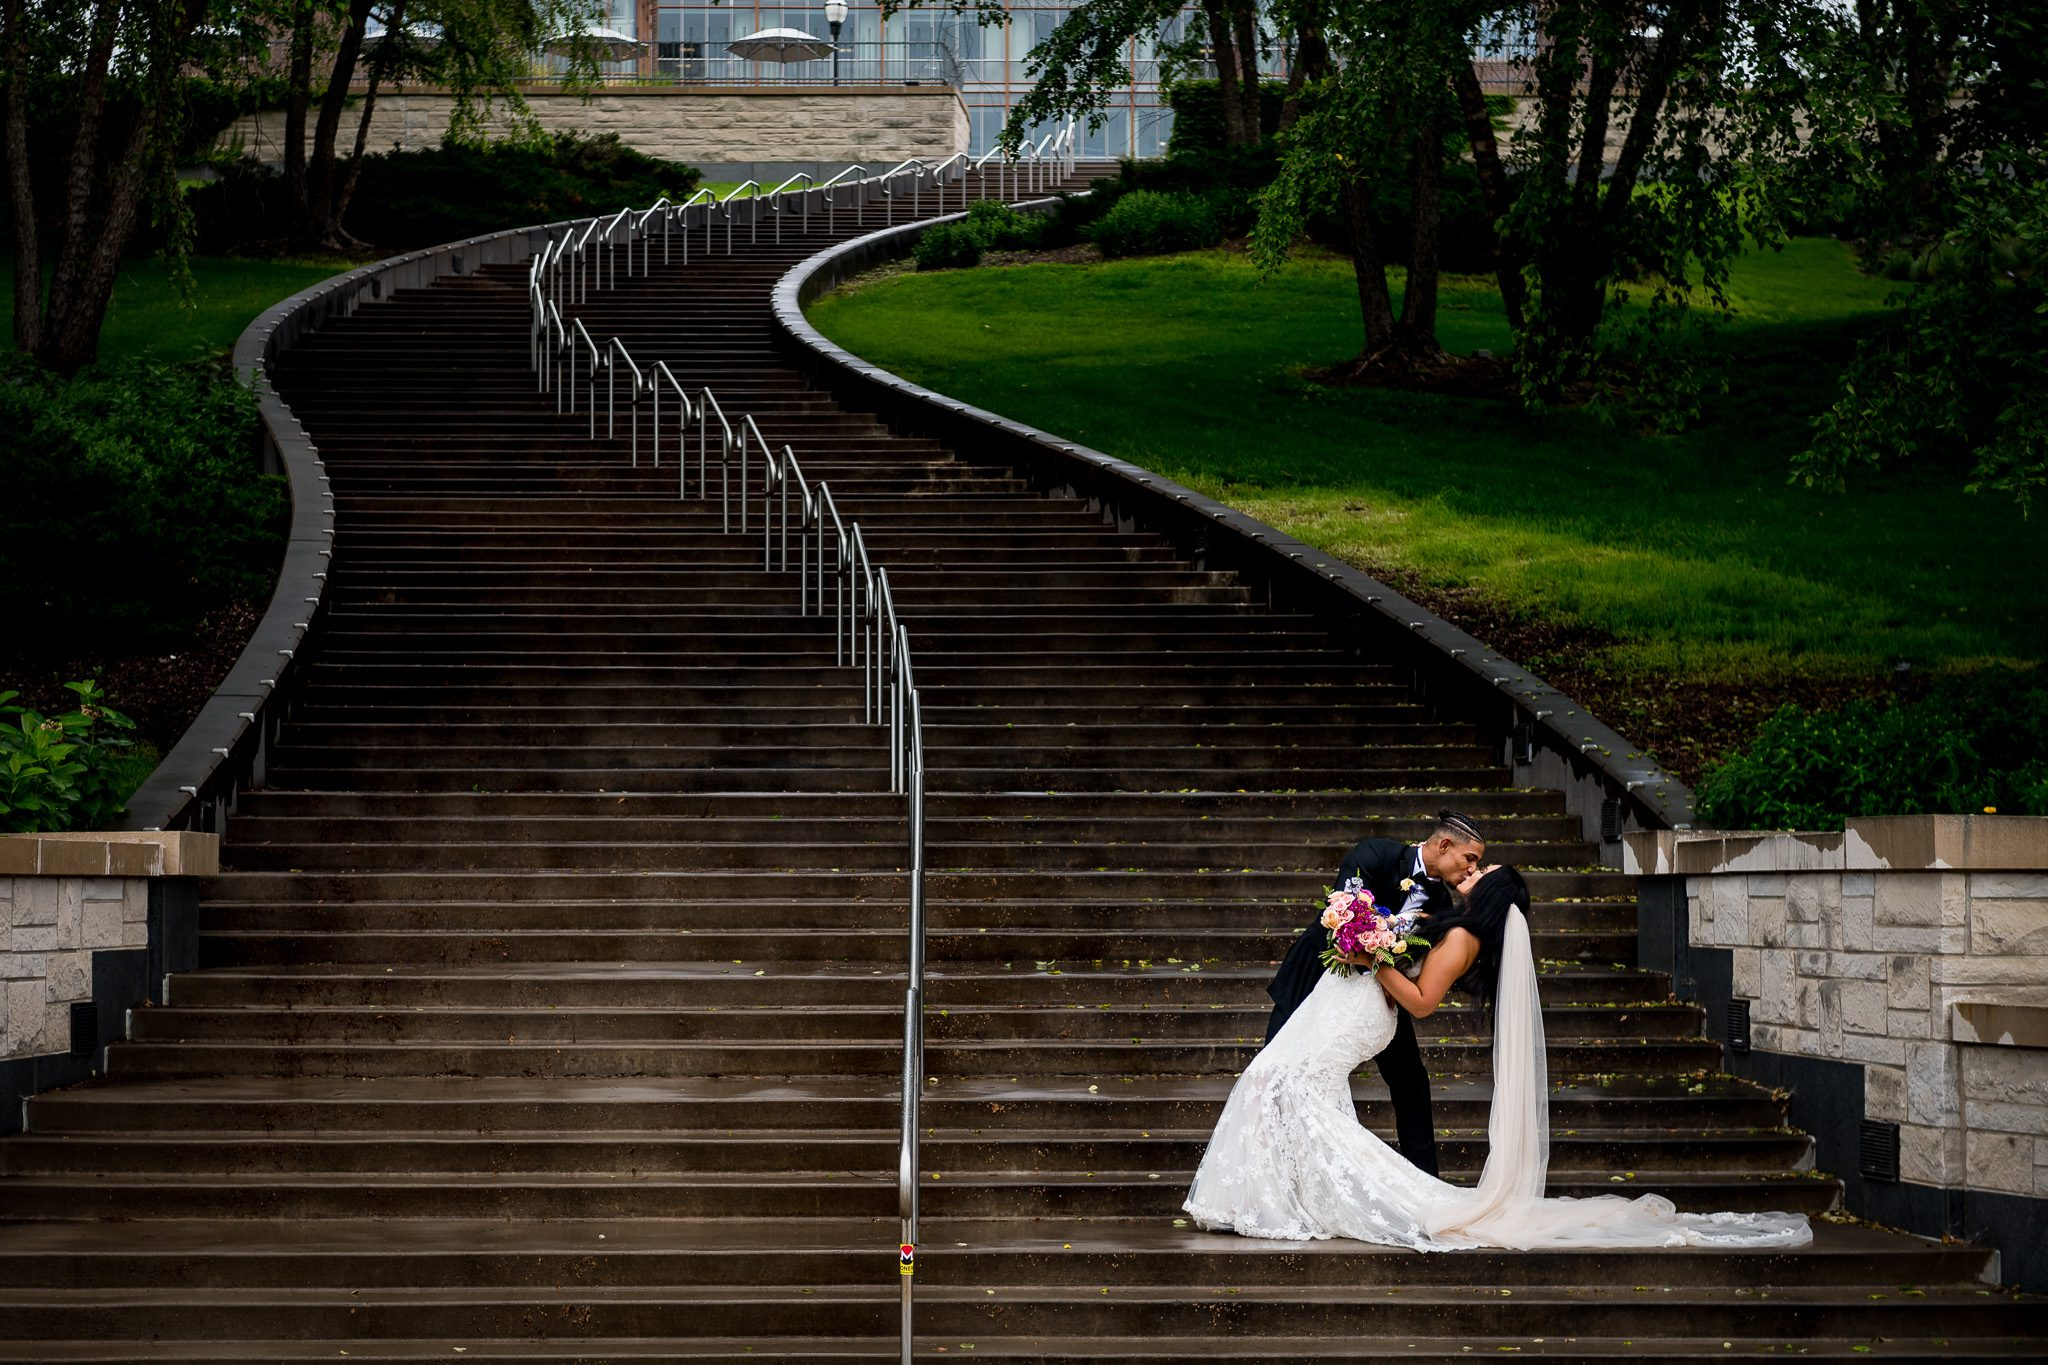 Elijah Campbell (nfl player for the Miami Dolphins) dips his bride Anisse back and then leans in for a kiss at the bottom of a long and winding staircase at the University of Minnesota.